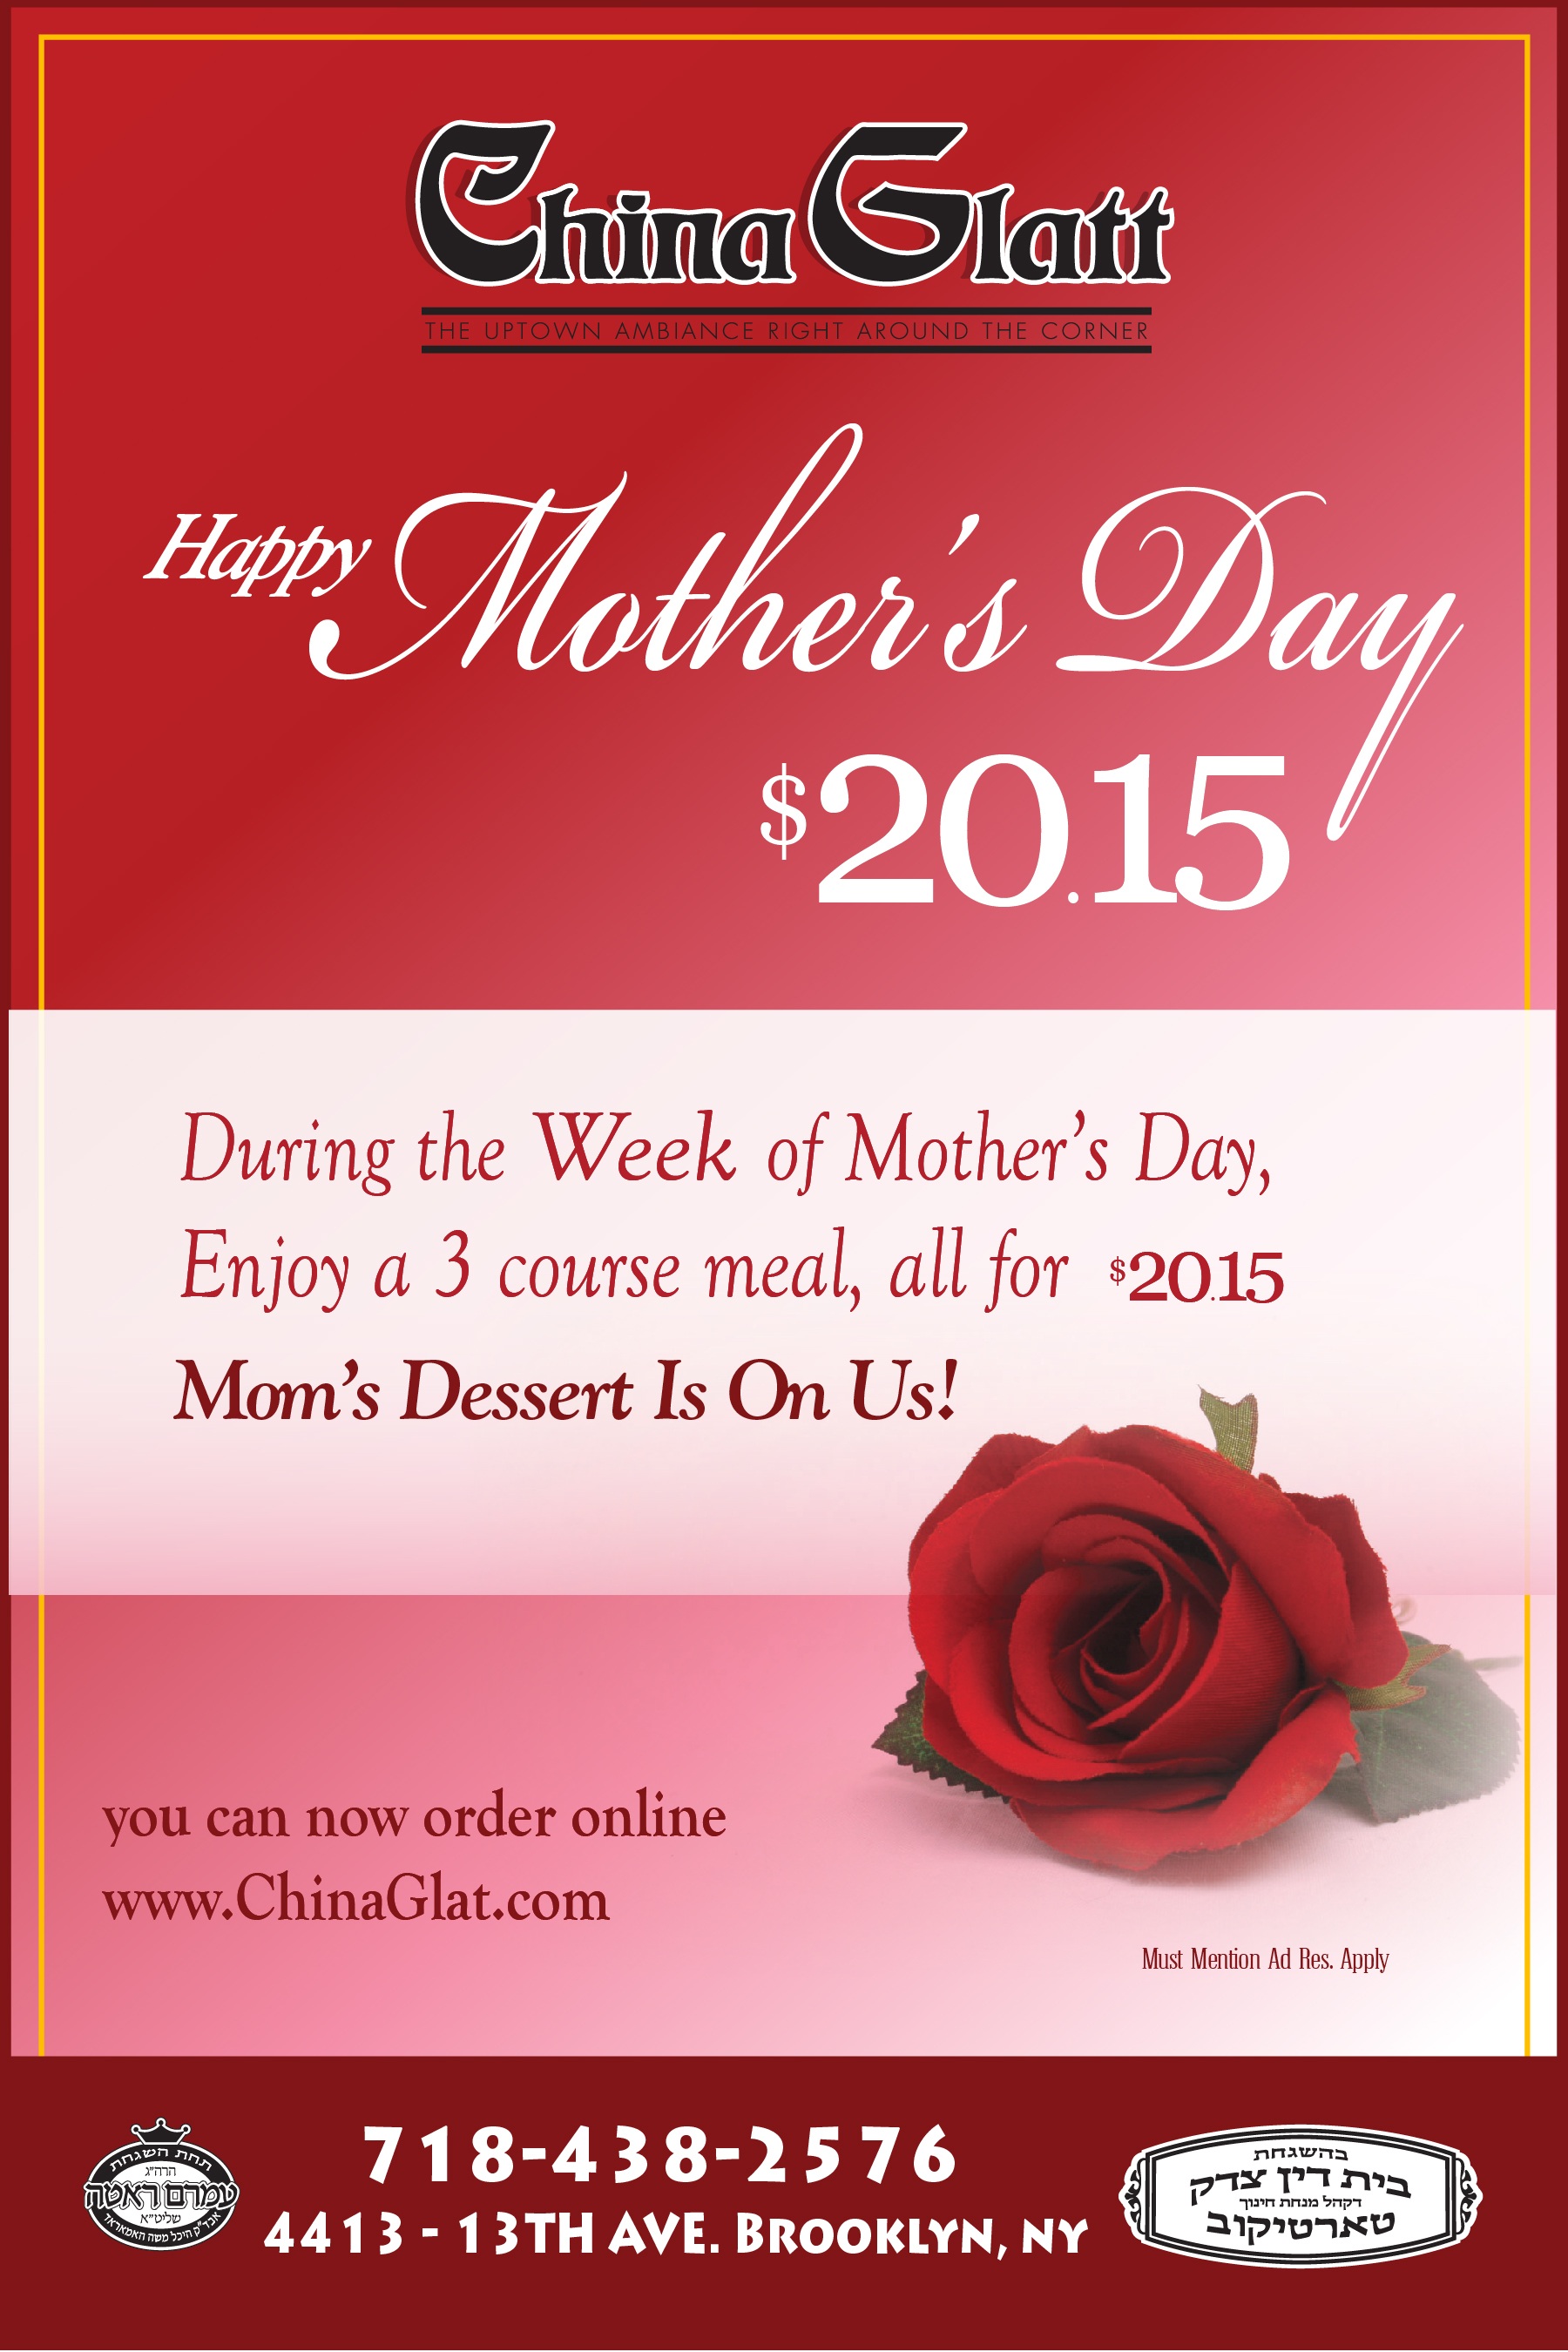 Mother's Day Menus and Specials - GREAT KOSHER RESTAURANTS